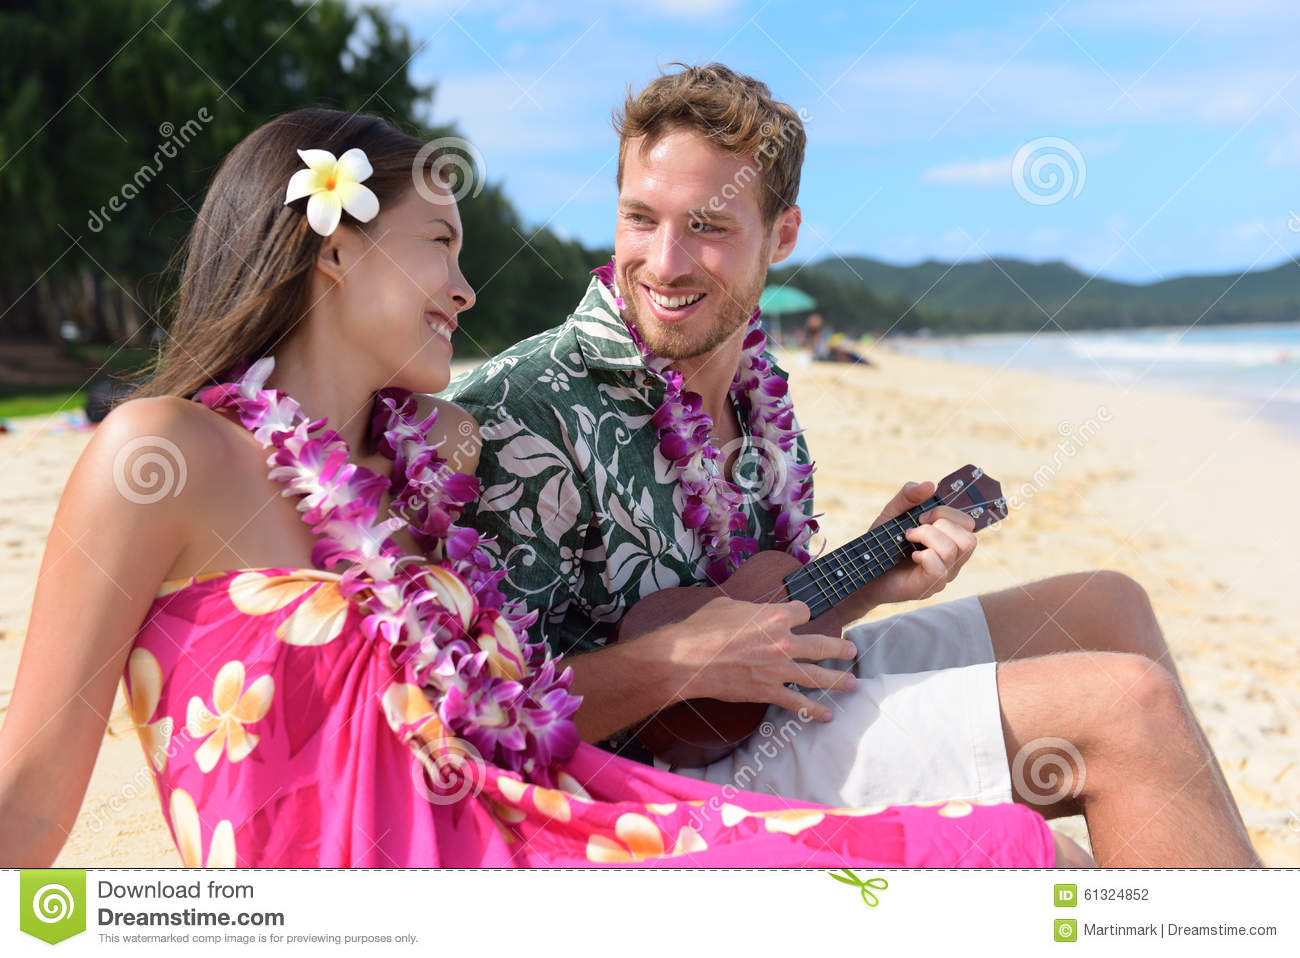 Men seeking women hawaii